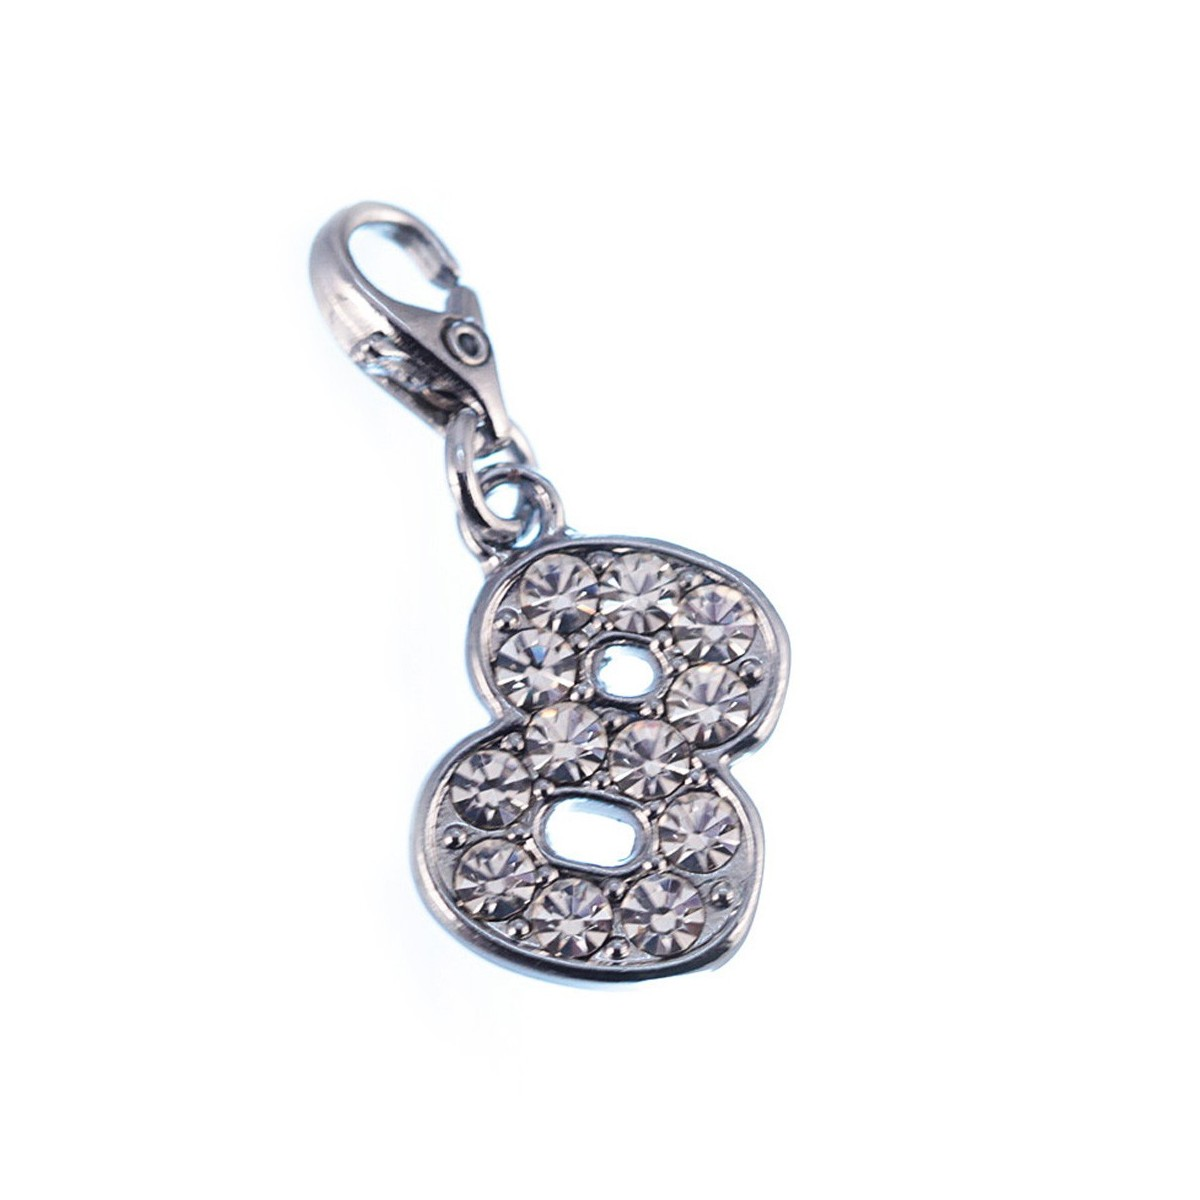 Charm Chiffre 8 So Charm made with Crystal from Swarovski